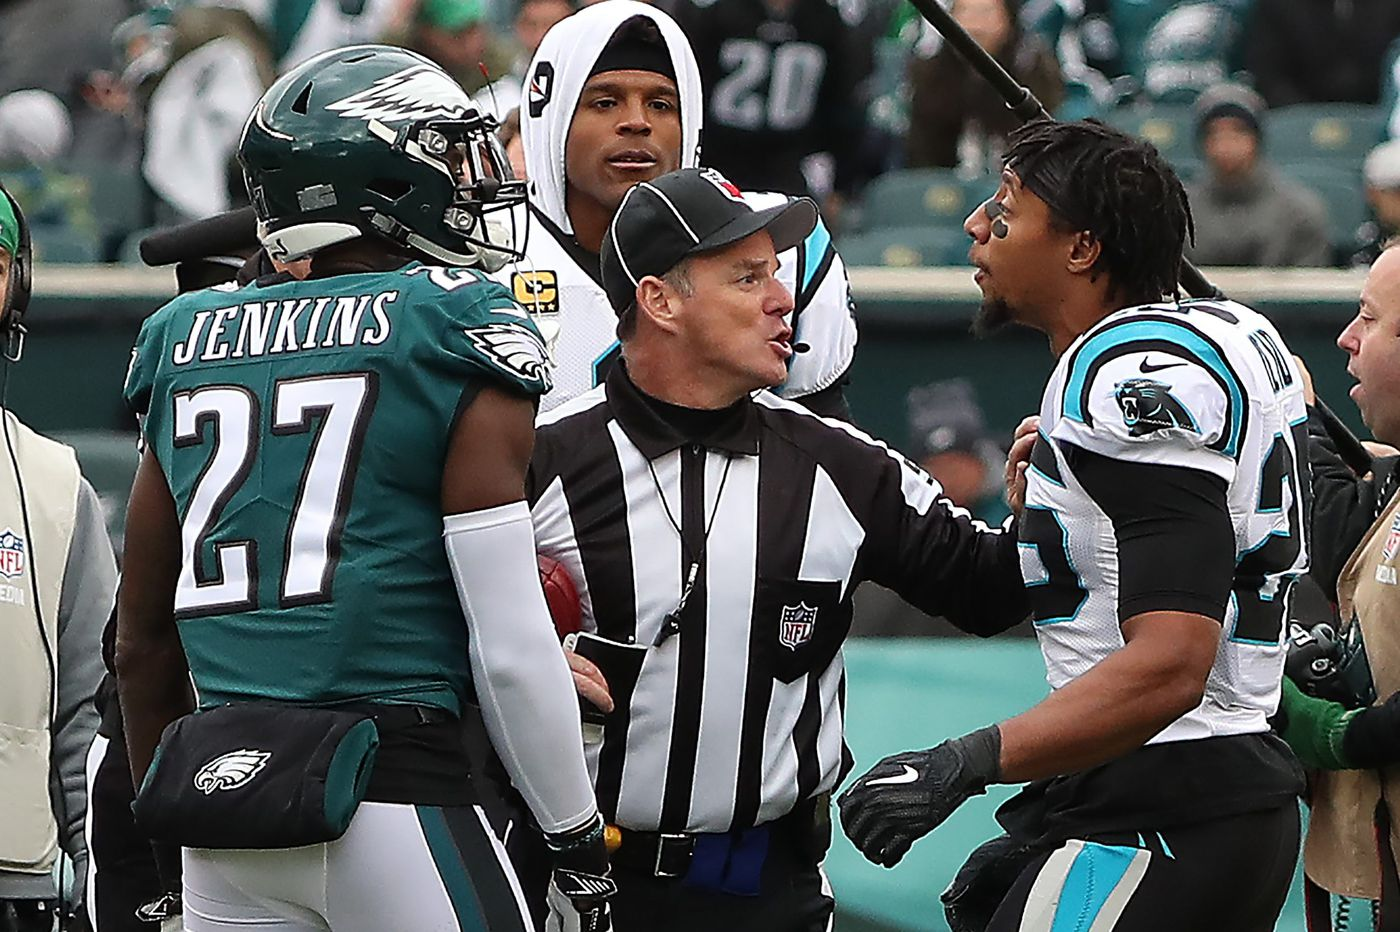 Panthers' Eric Reid exchanges words with Eagles' Malcolm Jenkins prior to game, delivers late hit on Carson Wentz